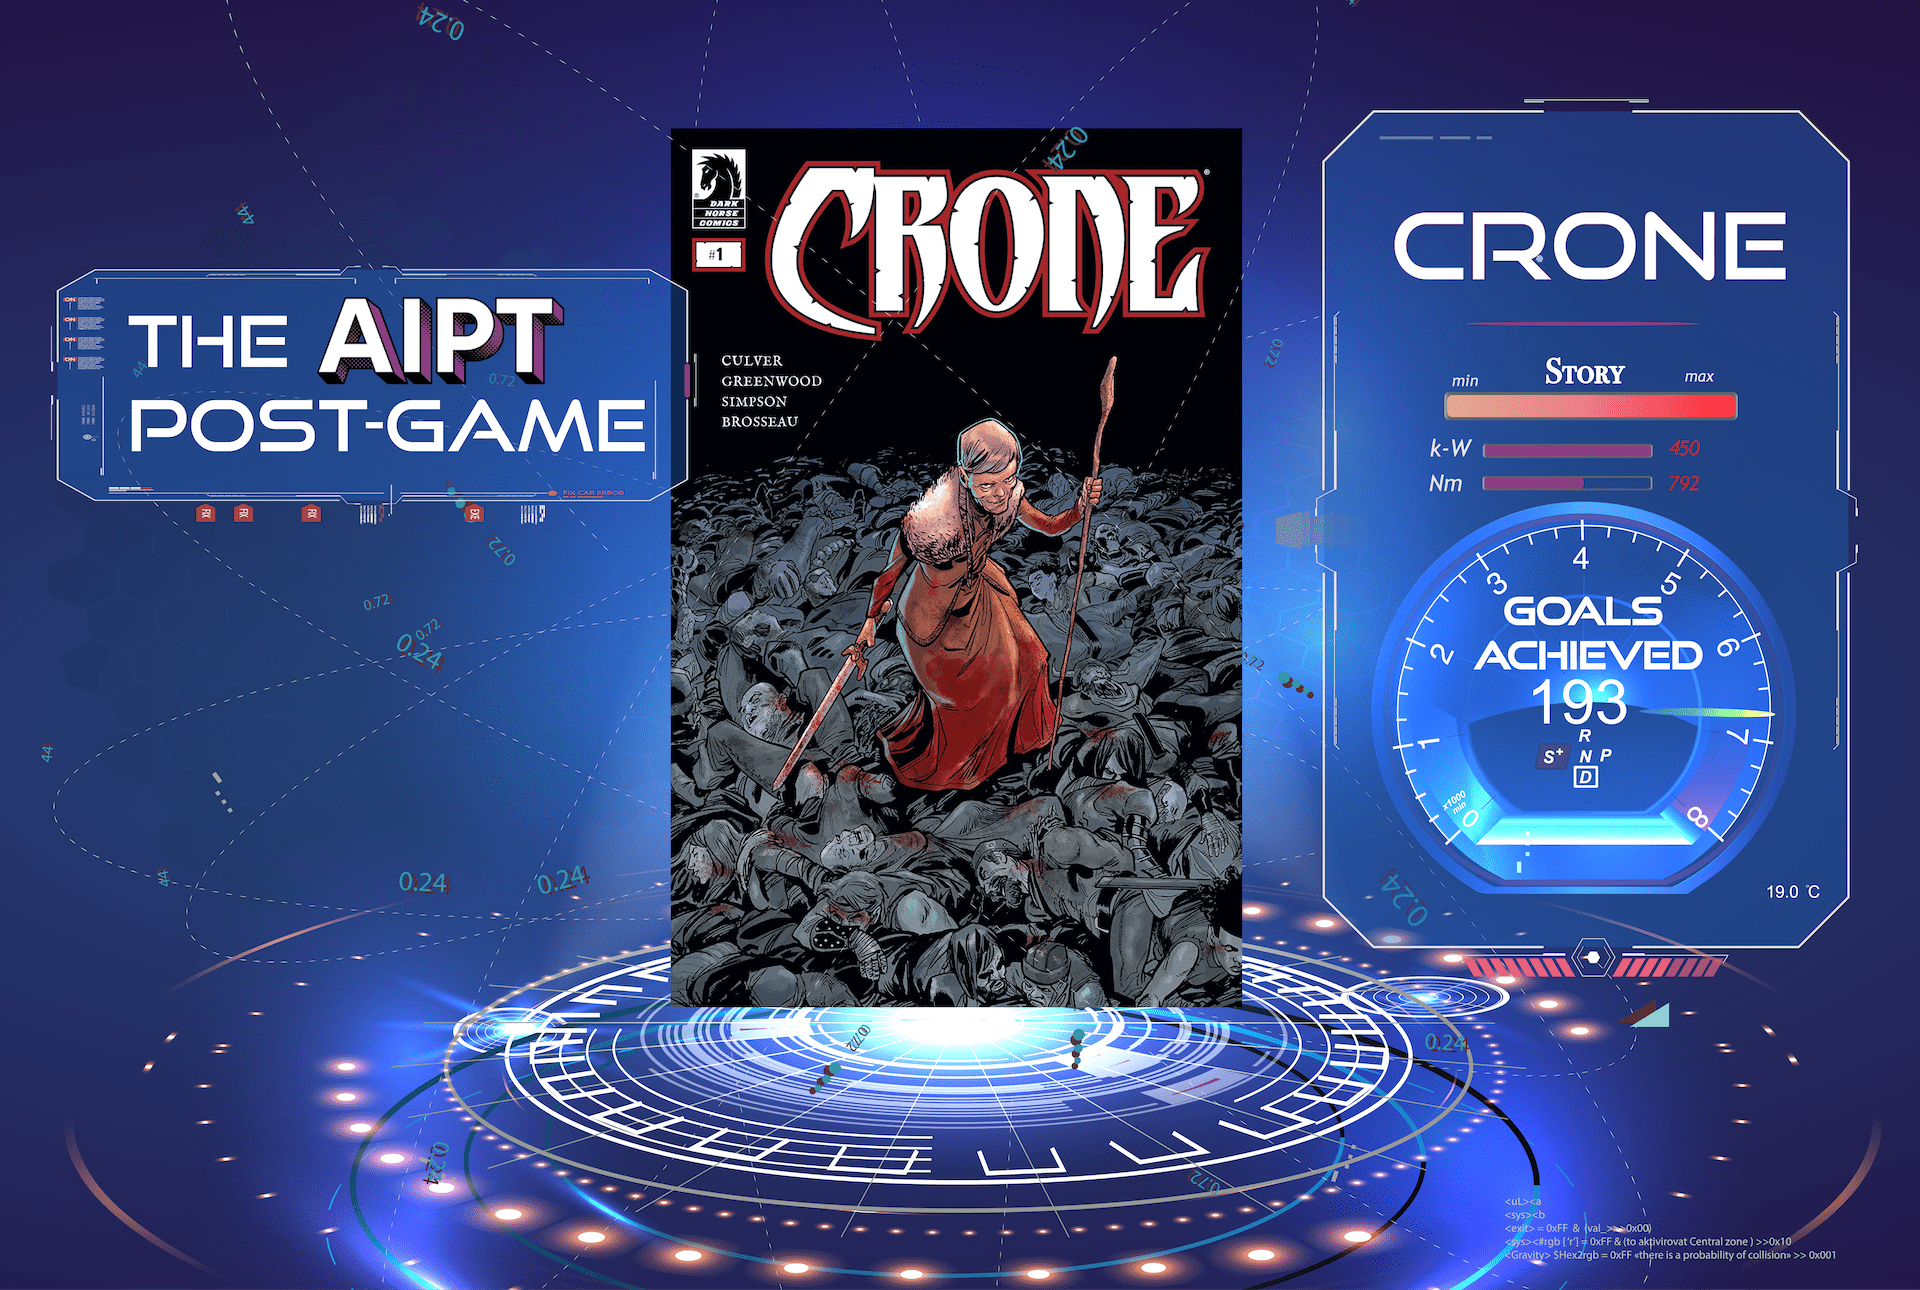 Post-Game: 'Crone' (with Dennis Culver and Justin Greenwood)